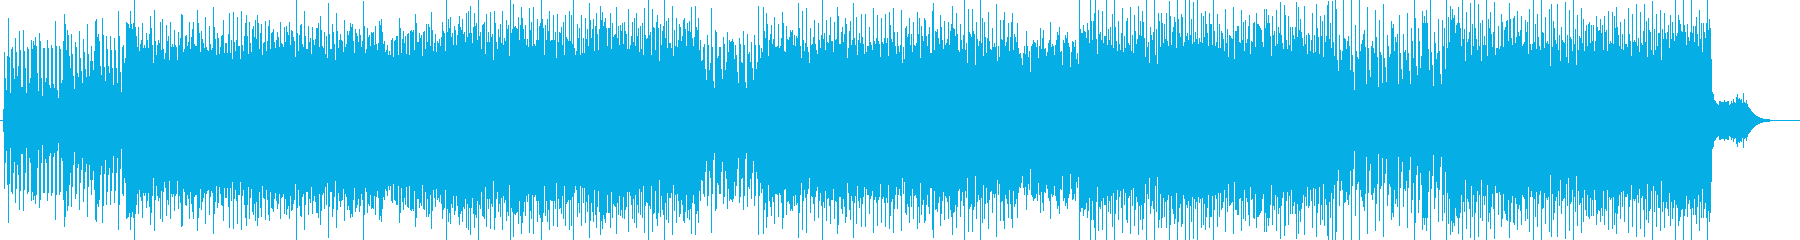 Game BGM Techno Mix Pop's reproduced waveform